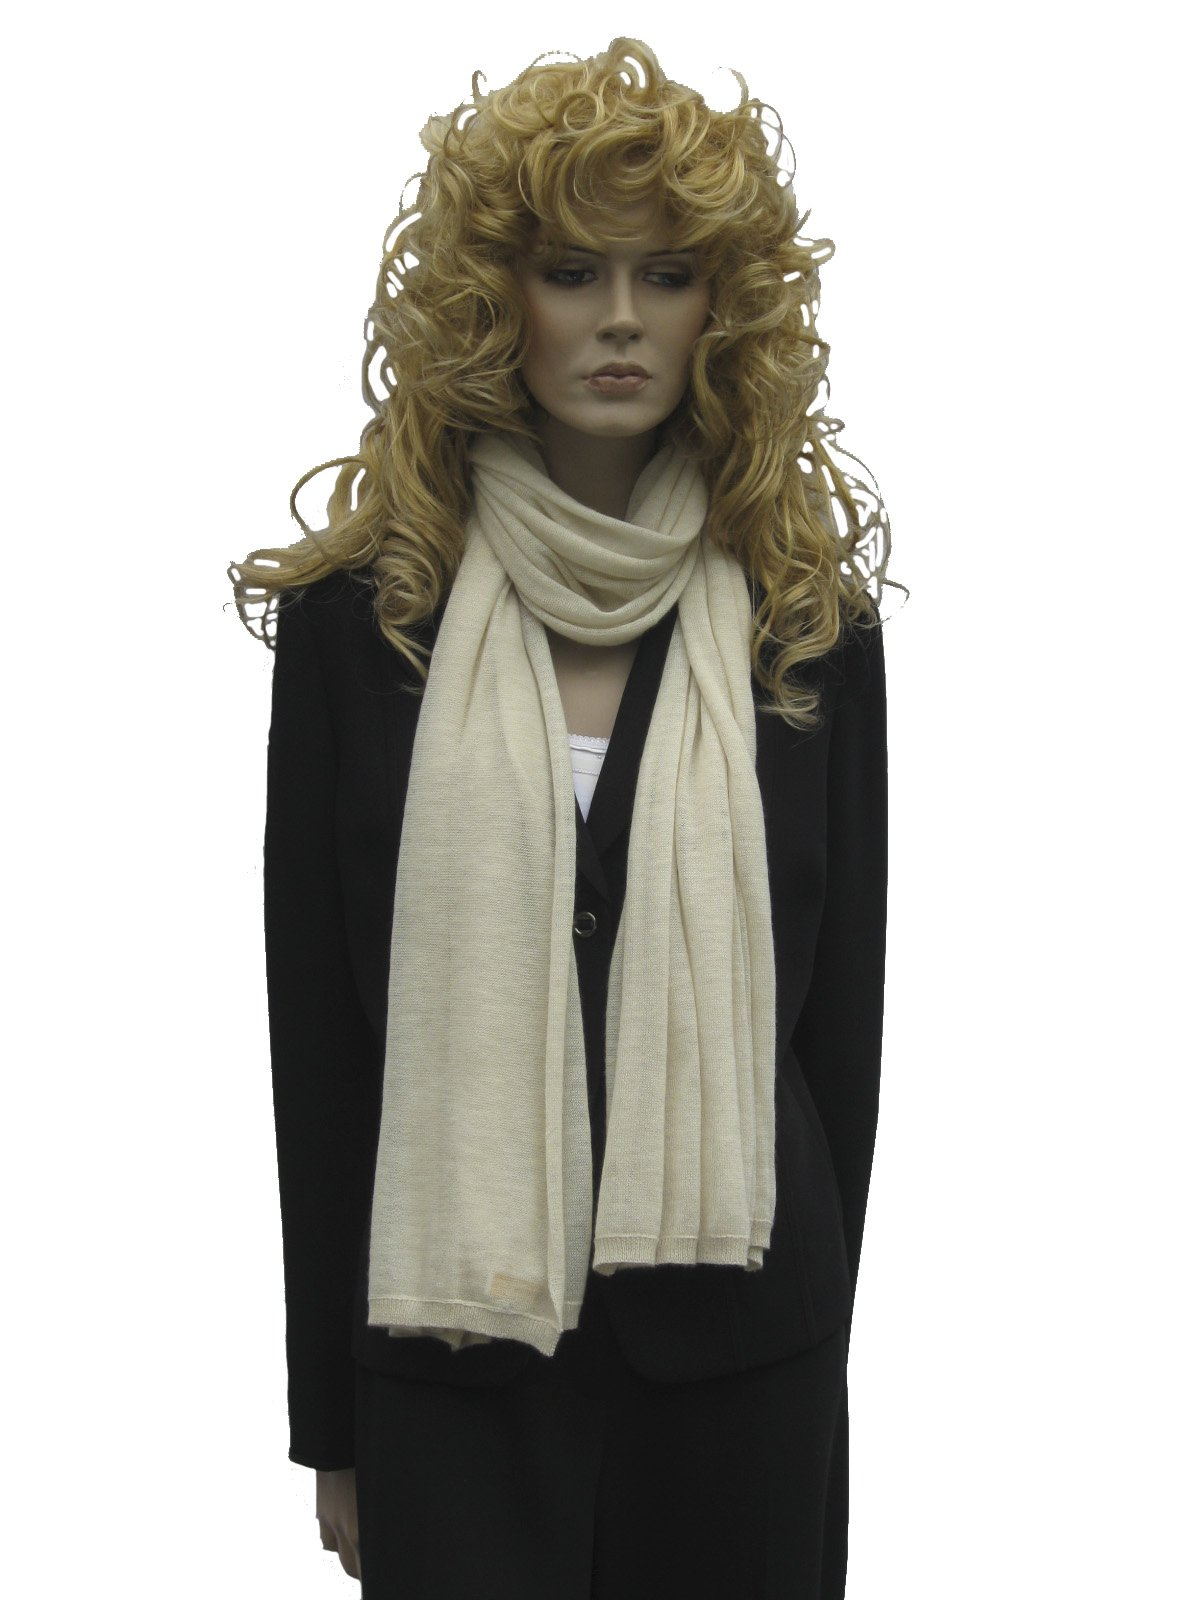 Cashmere Pashmina Group: Cashmere Scarf Shawl Stole Wrap (Sweater Knit Cashmere Shawl) Ivory by Cashmere Pashmina Group